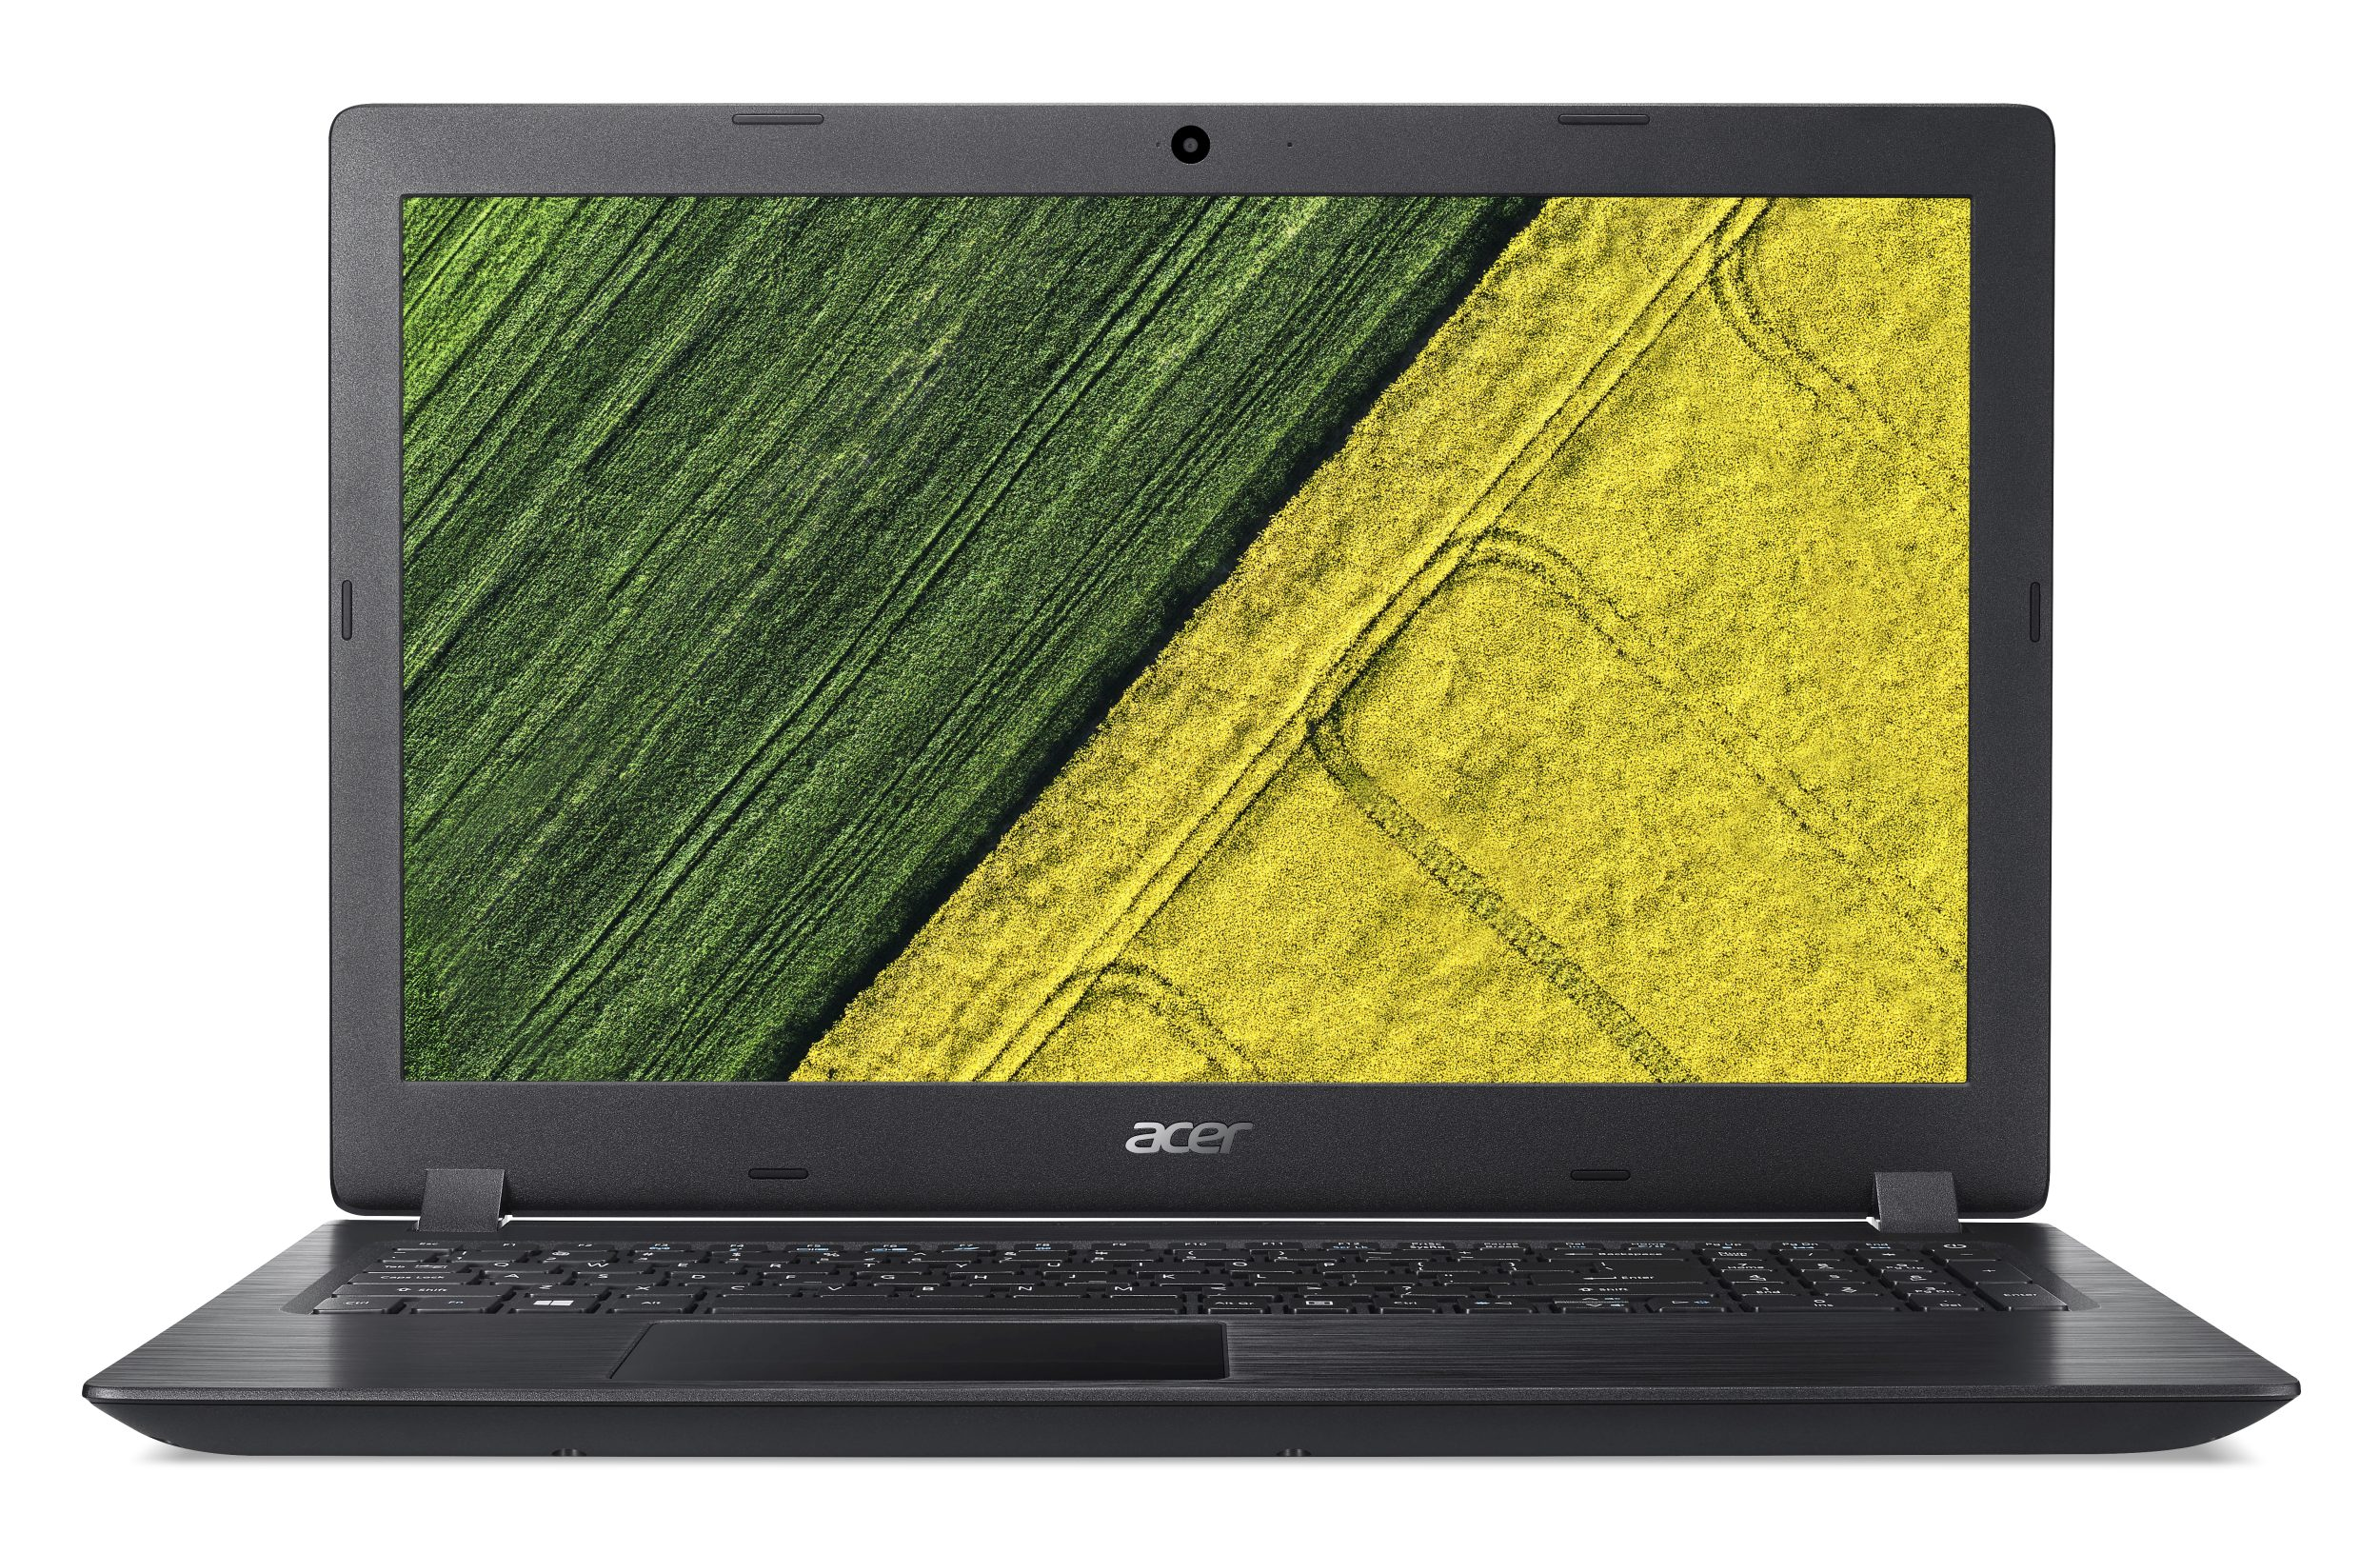 "Acer Aspire 3 (A315-31-P63B) Pentium N4200/4GB/128GB SSD/ HD Graphics/15,6"" FHD LED matný/BT/W10 Home/Black"